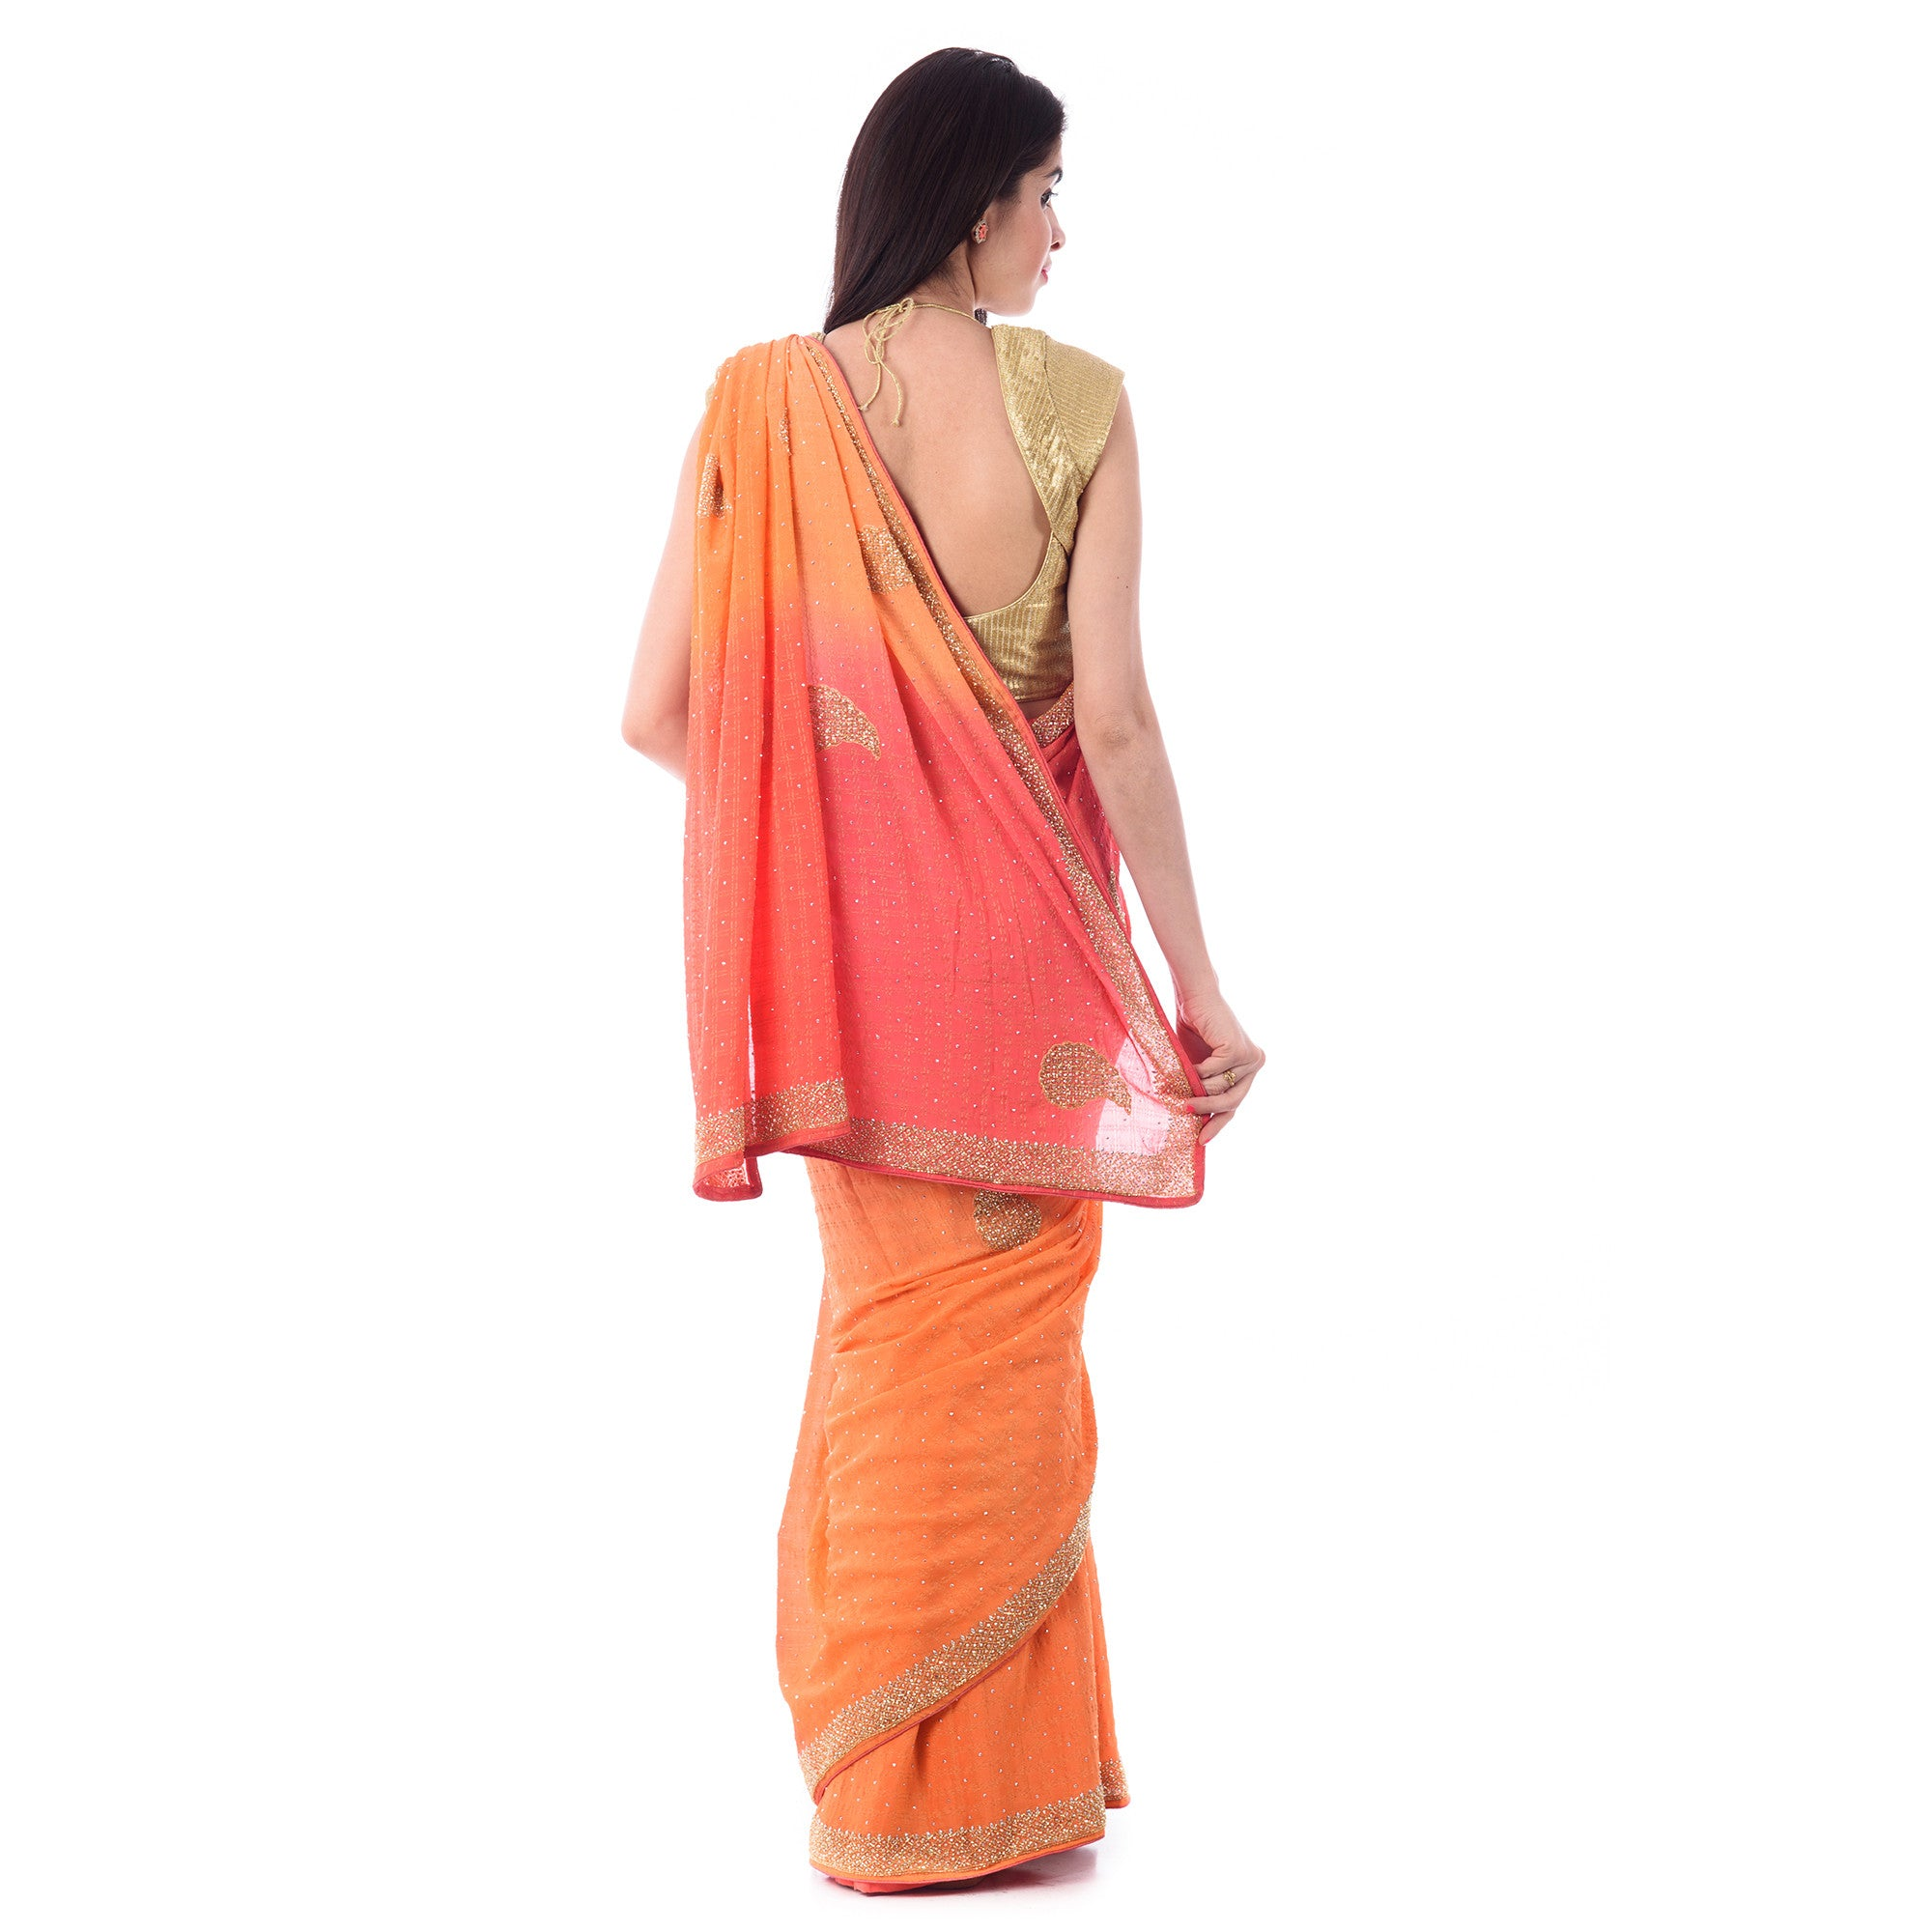 Malti Zari Chokdi Cut-Dana Work Saree With Blouse Price - Shri Krishnam